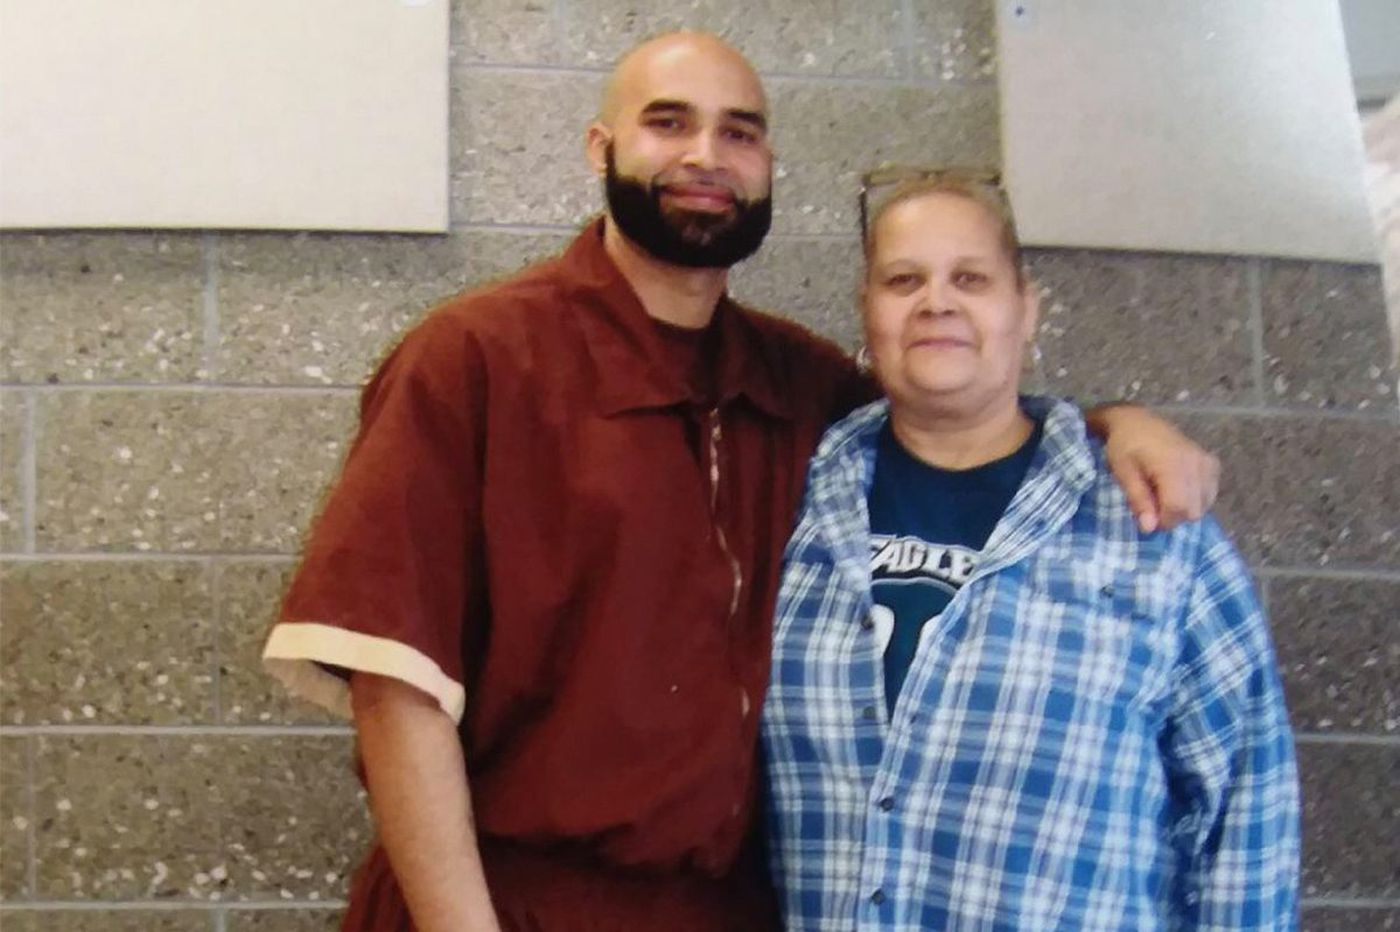 My brother's killer was sentenced to death, but I hope he is allowed to live | Perspective